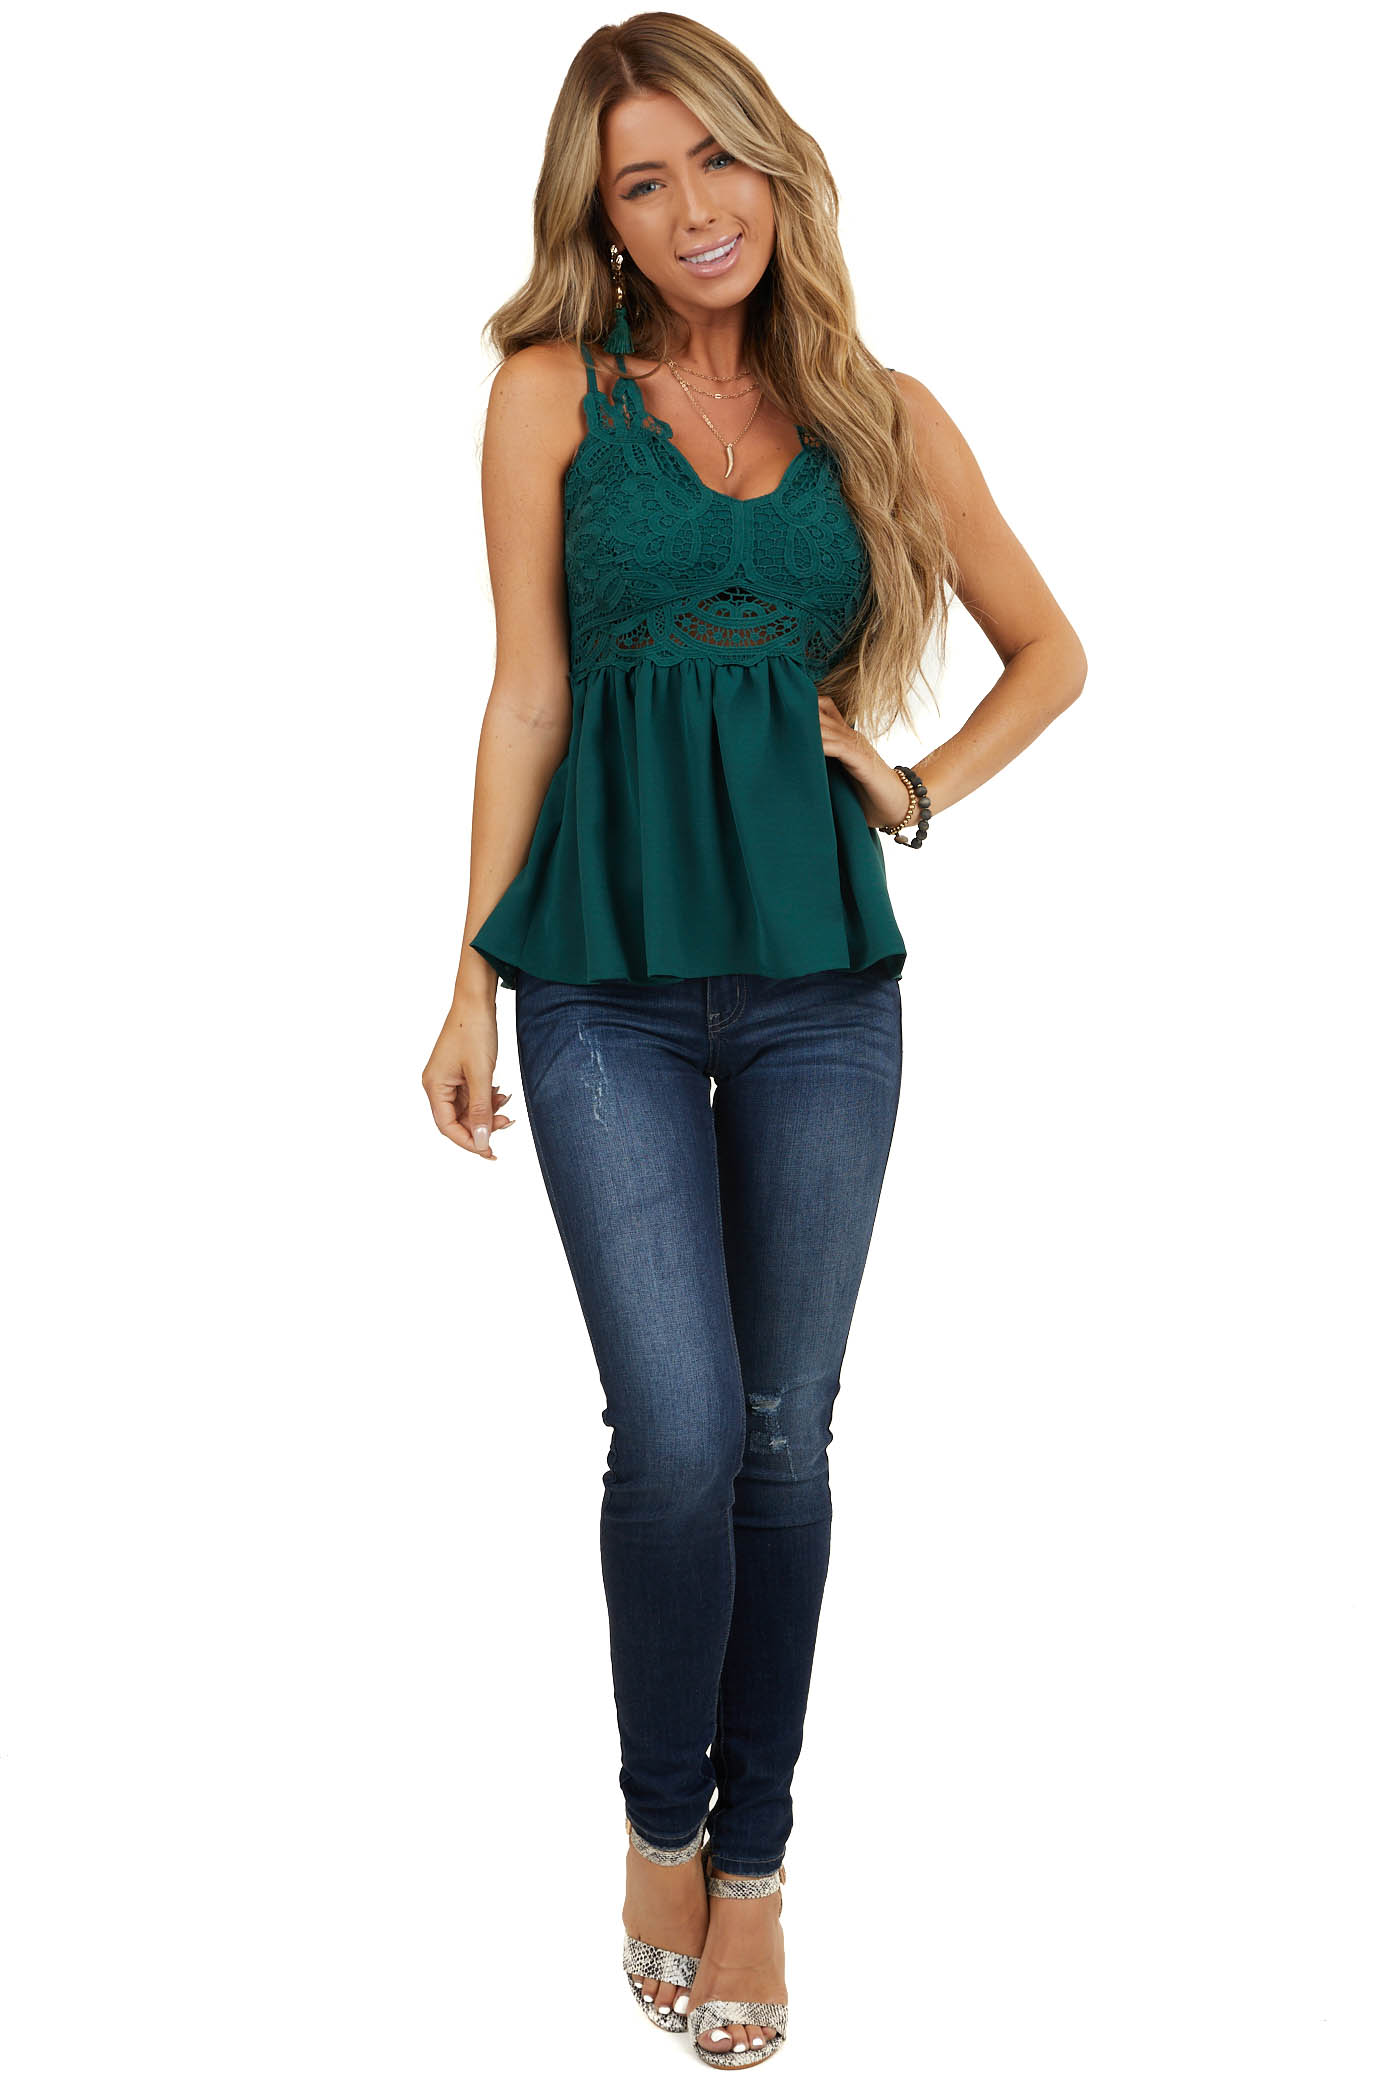 Pine Green Babydoll Top with Lace Bust and Peekaboo Waist